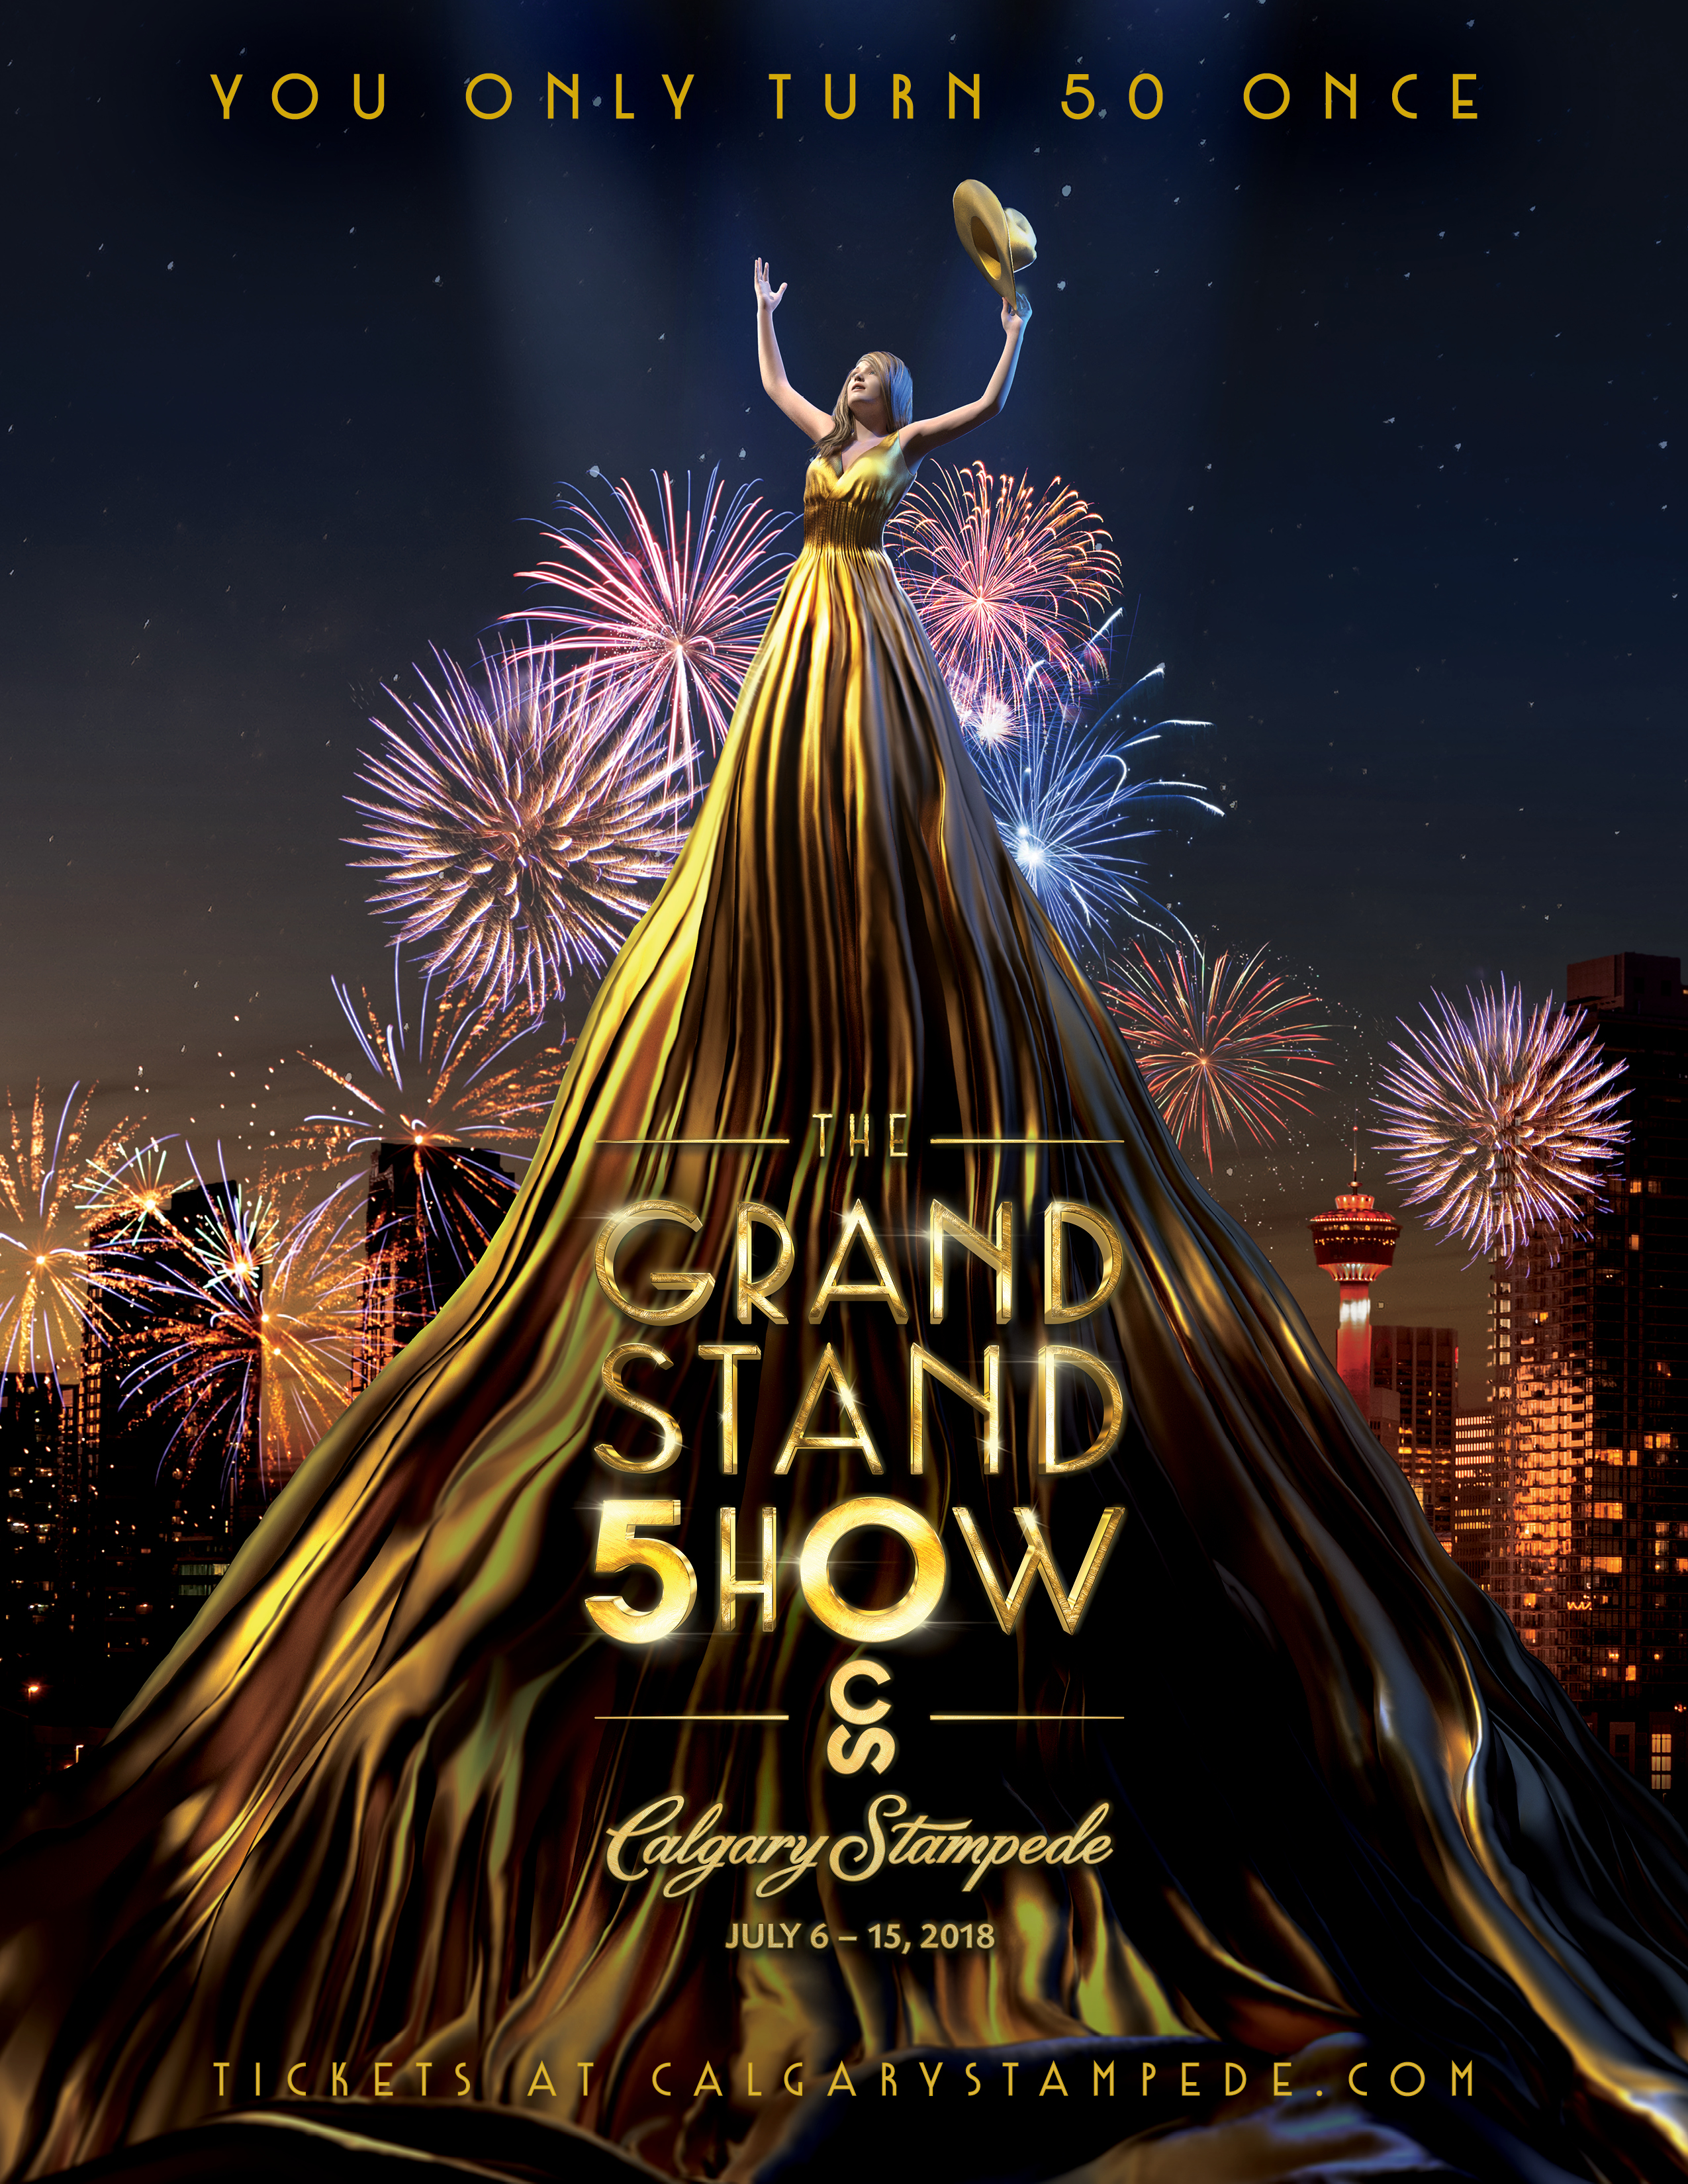 The Calgary Stampede Presents The Grandstand Show 50